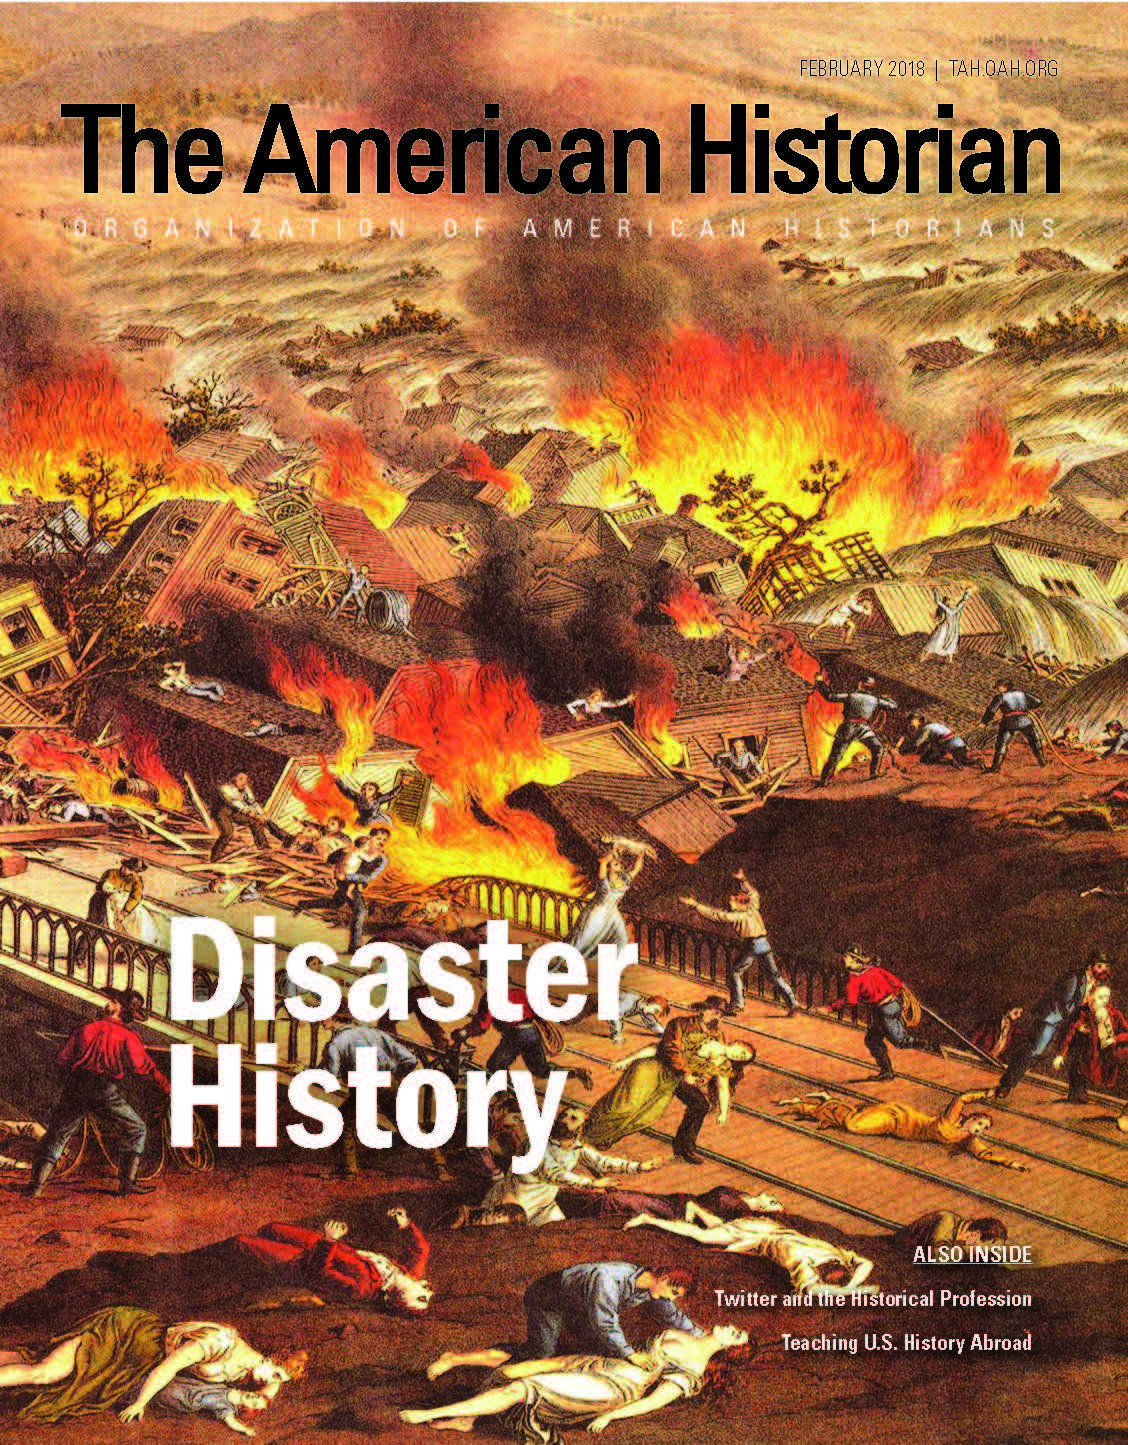 Cover image with link to The American Historian issue for Disaster History